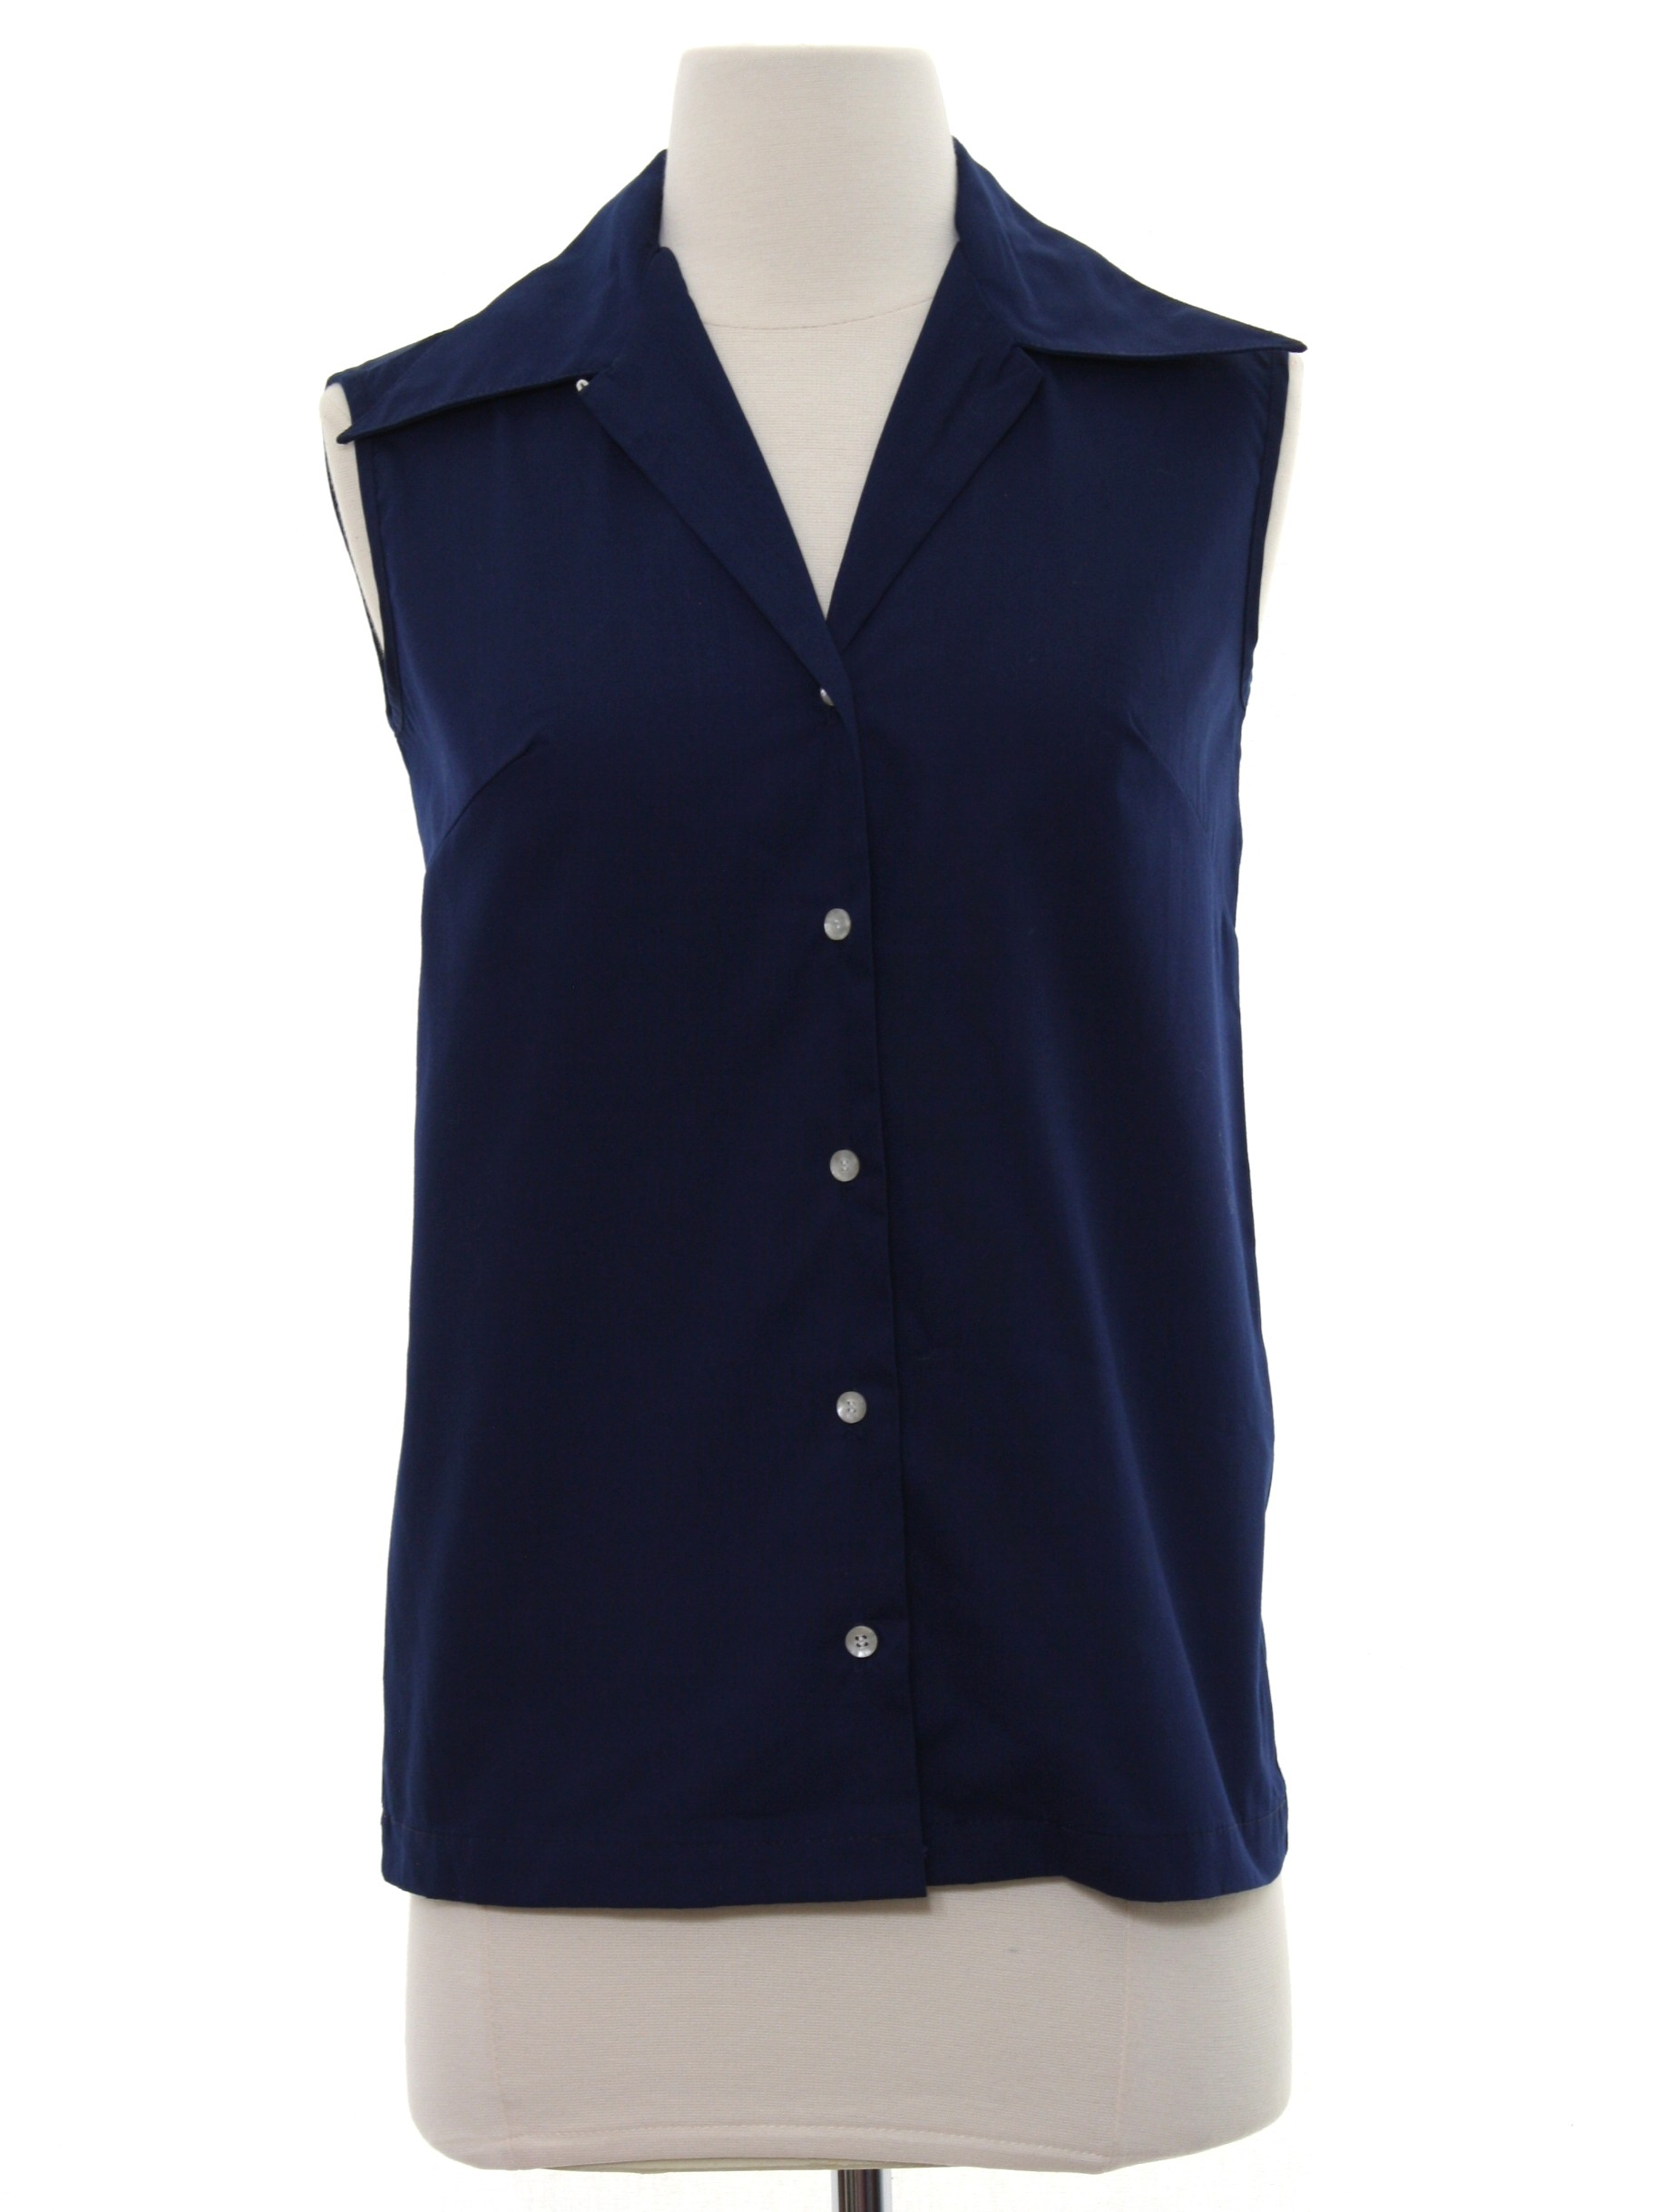 1960s Retro Shirt Late 60s Or Early 70s Sears Womens Navy Blue